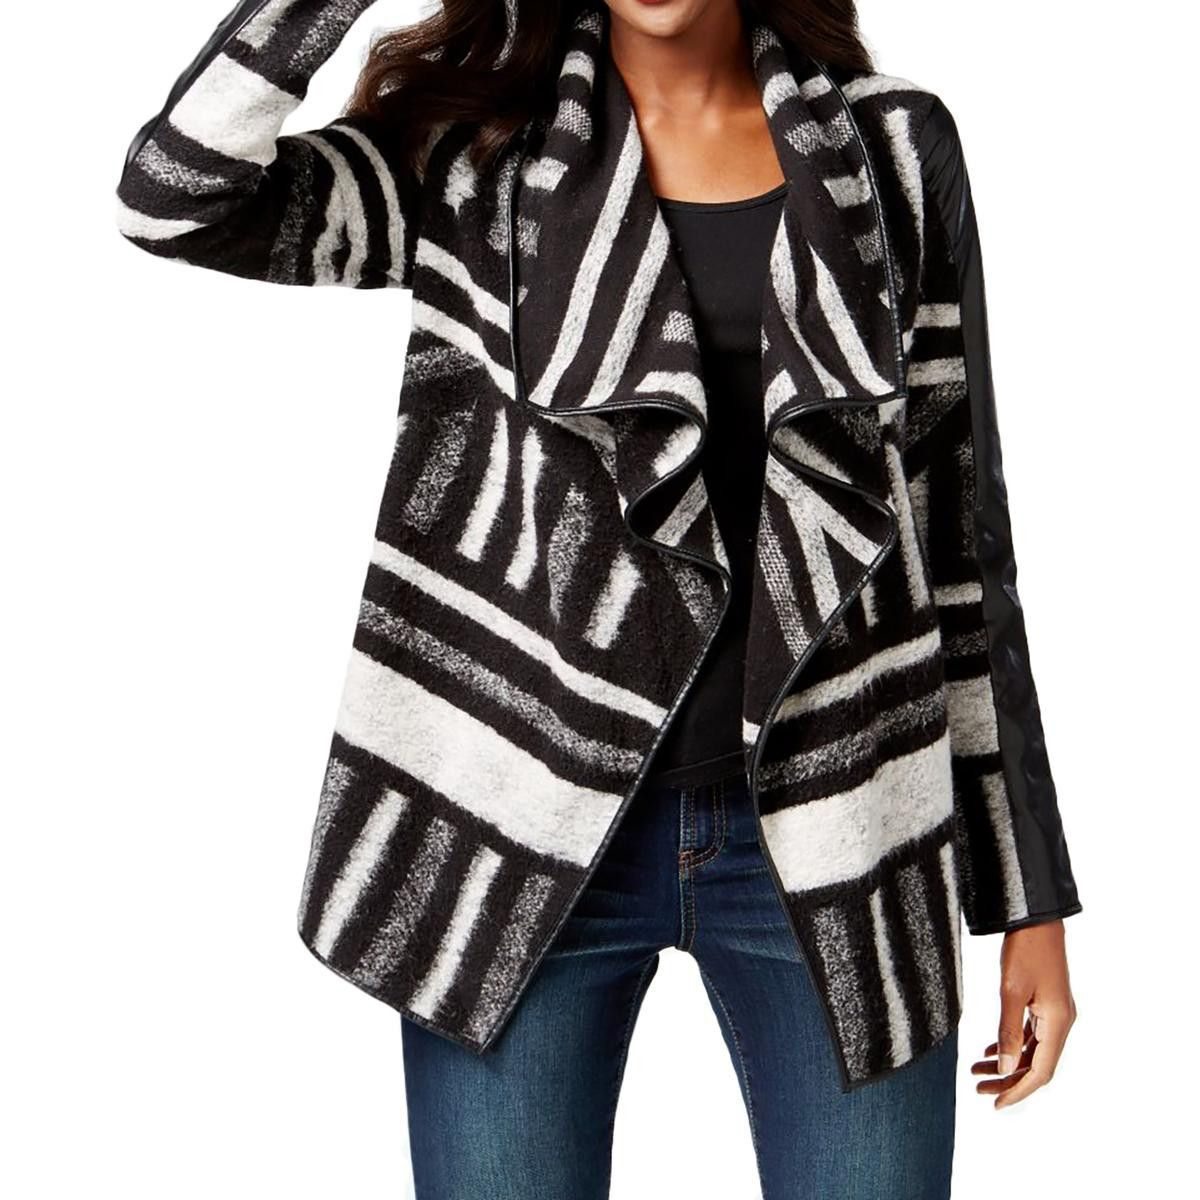 Womens Printed Mixed Media Cardigan Sweater | Products, Cardigans ...